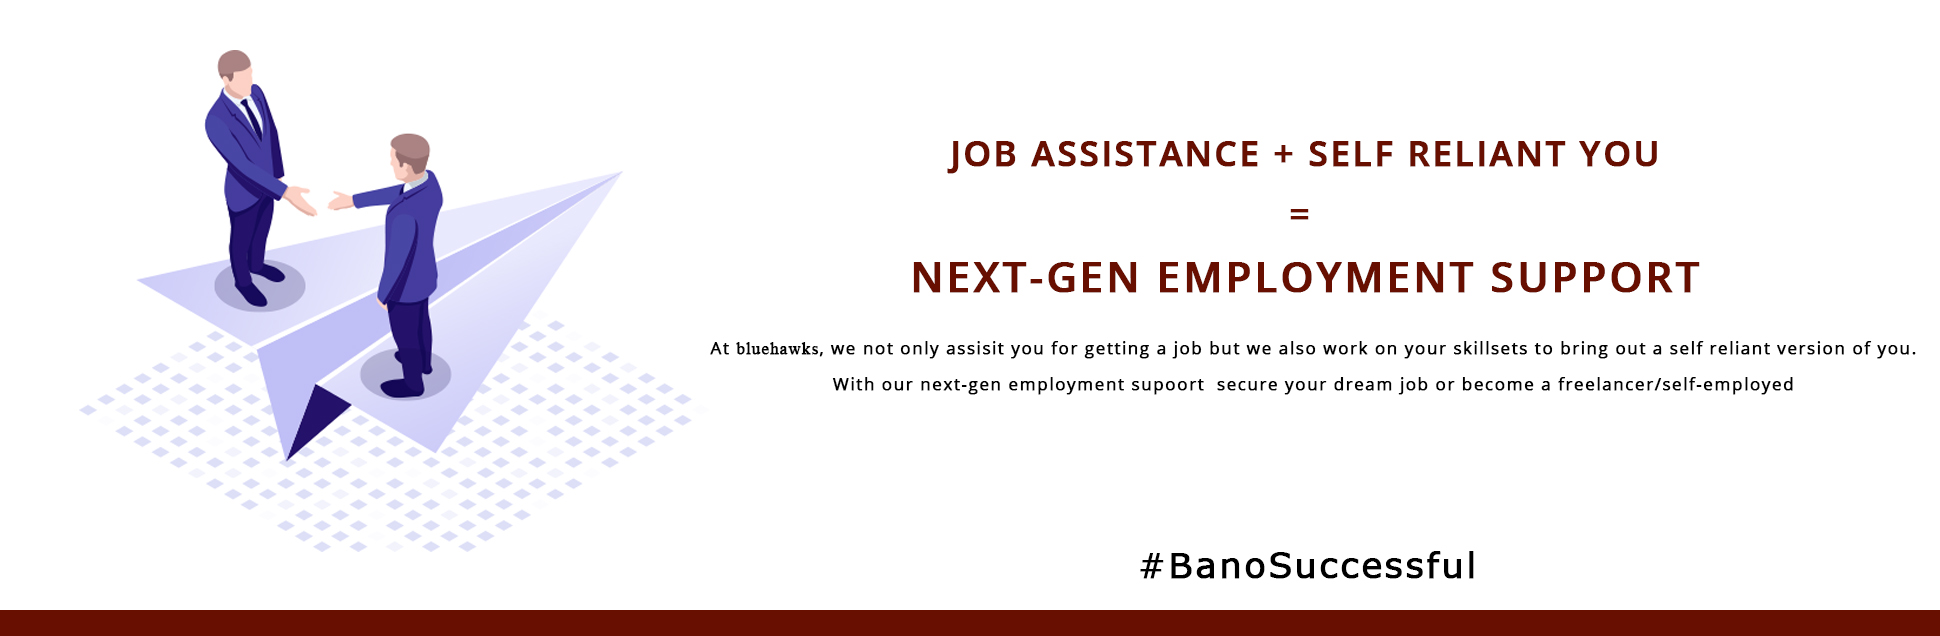 NEXT GET EMPLOYMENT SUPPORT HEADER